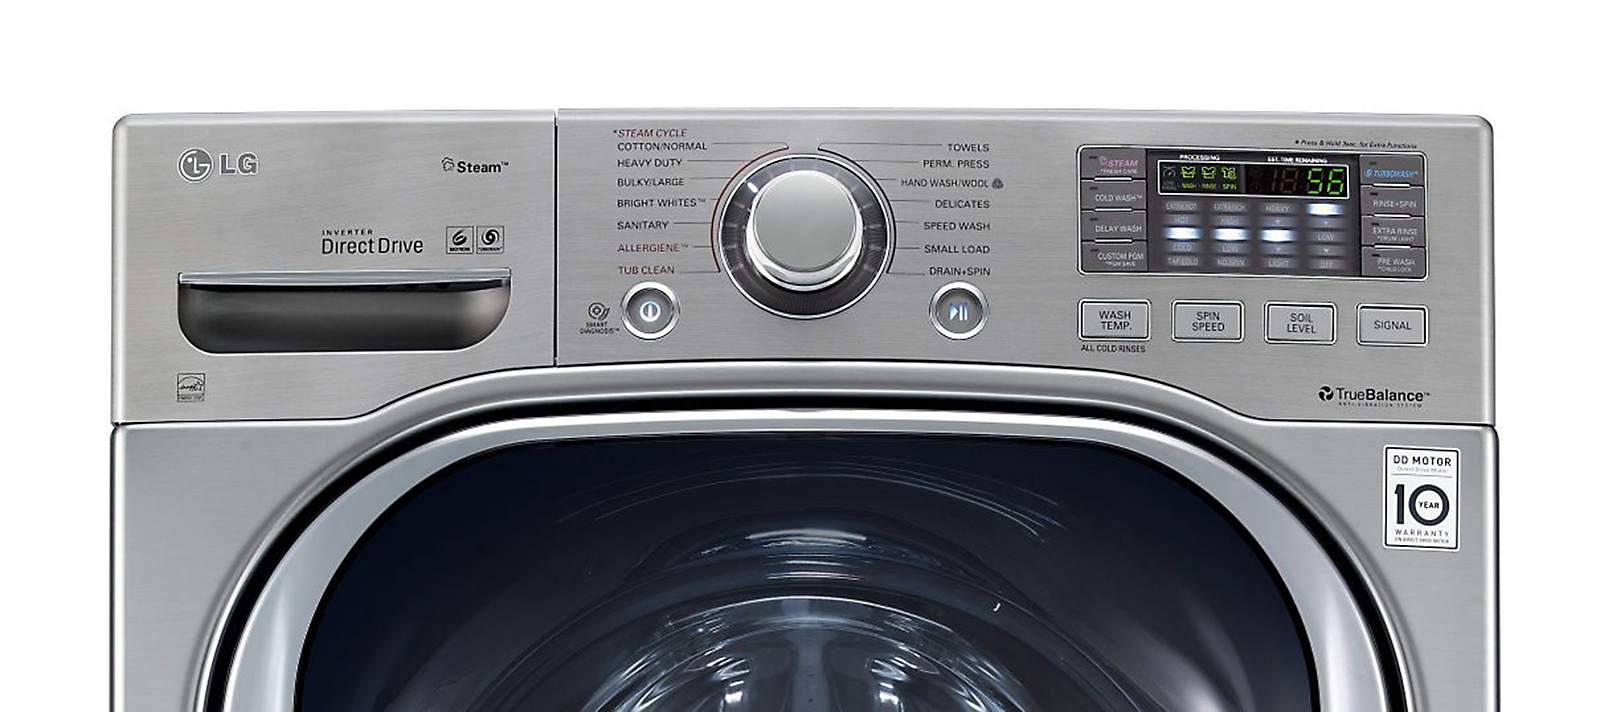 LG 4.3 cu. ft. Steam Front-Load Washer w/TurboWash™ - Metallic